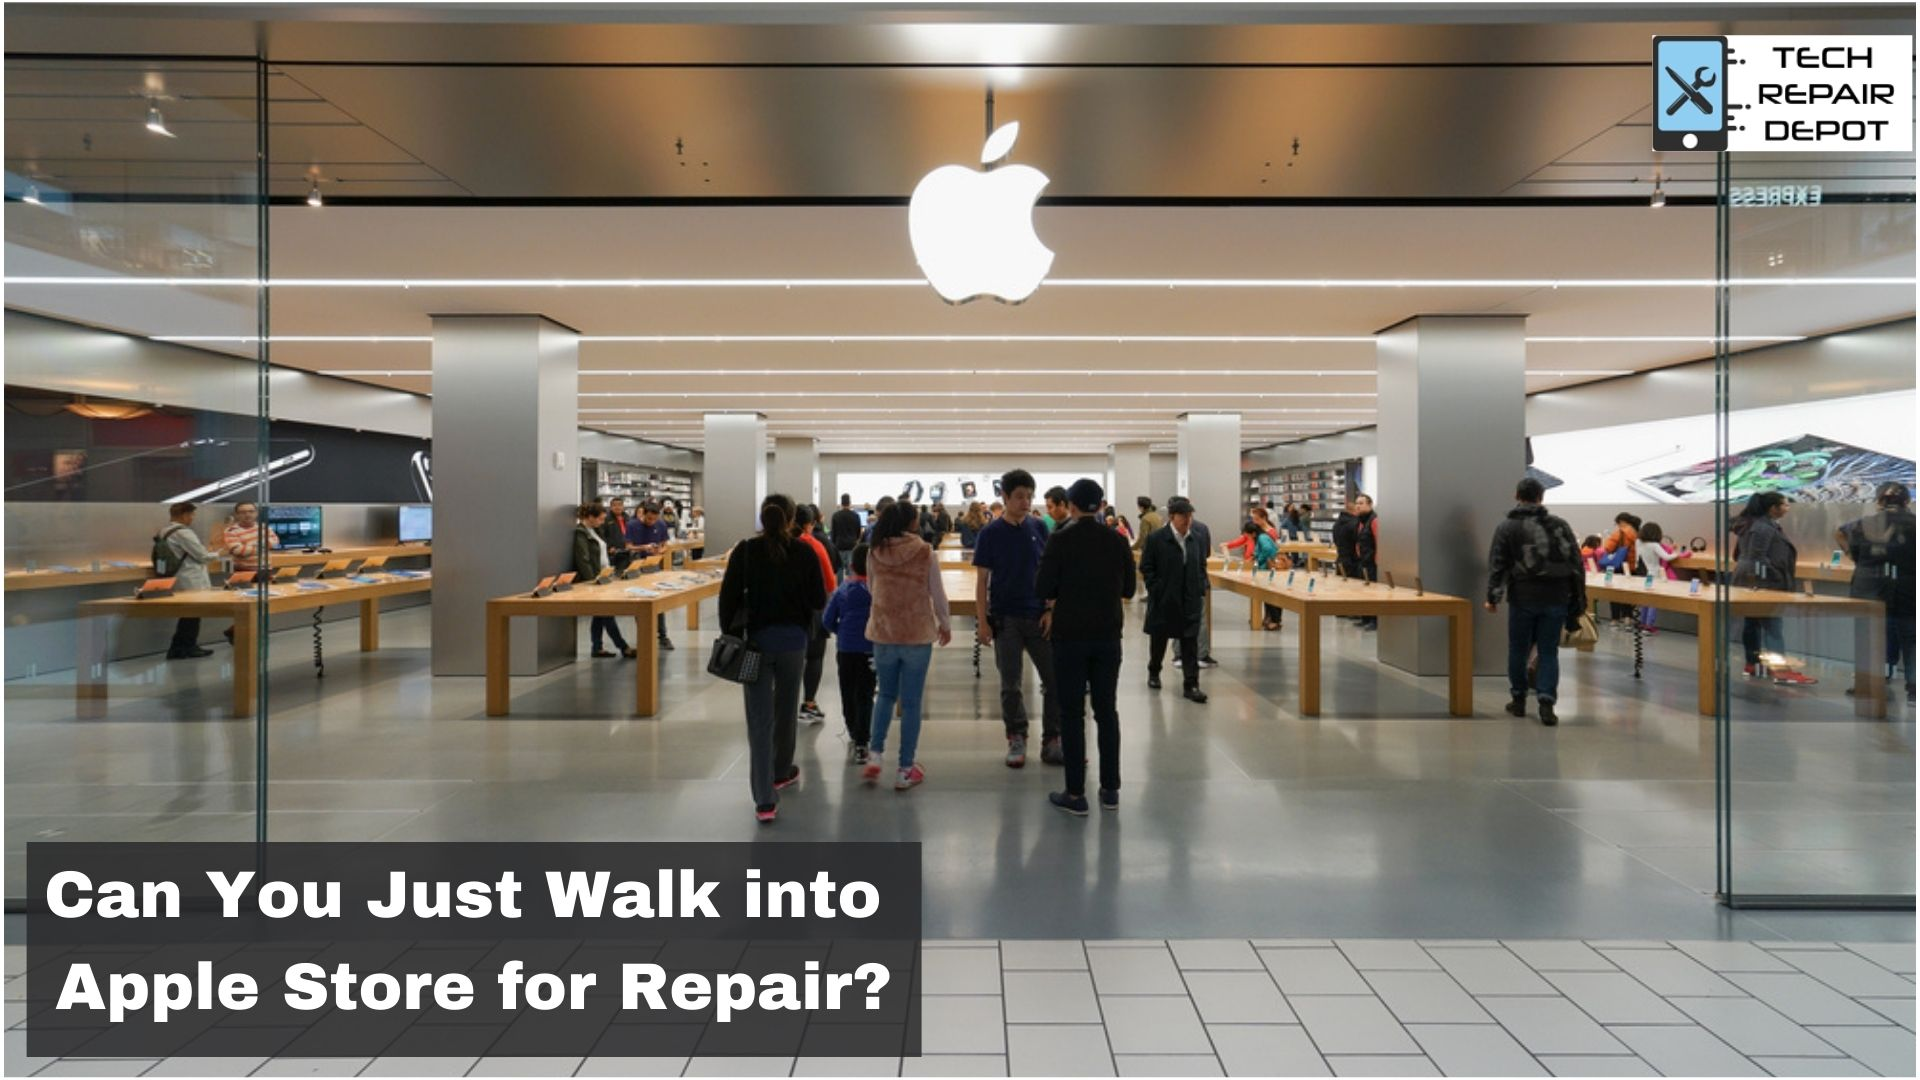 Can You Just Walk into Apple Store for Repair?